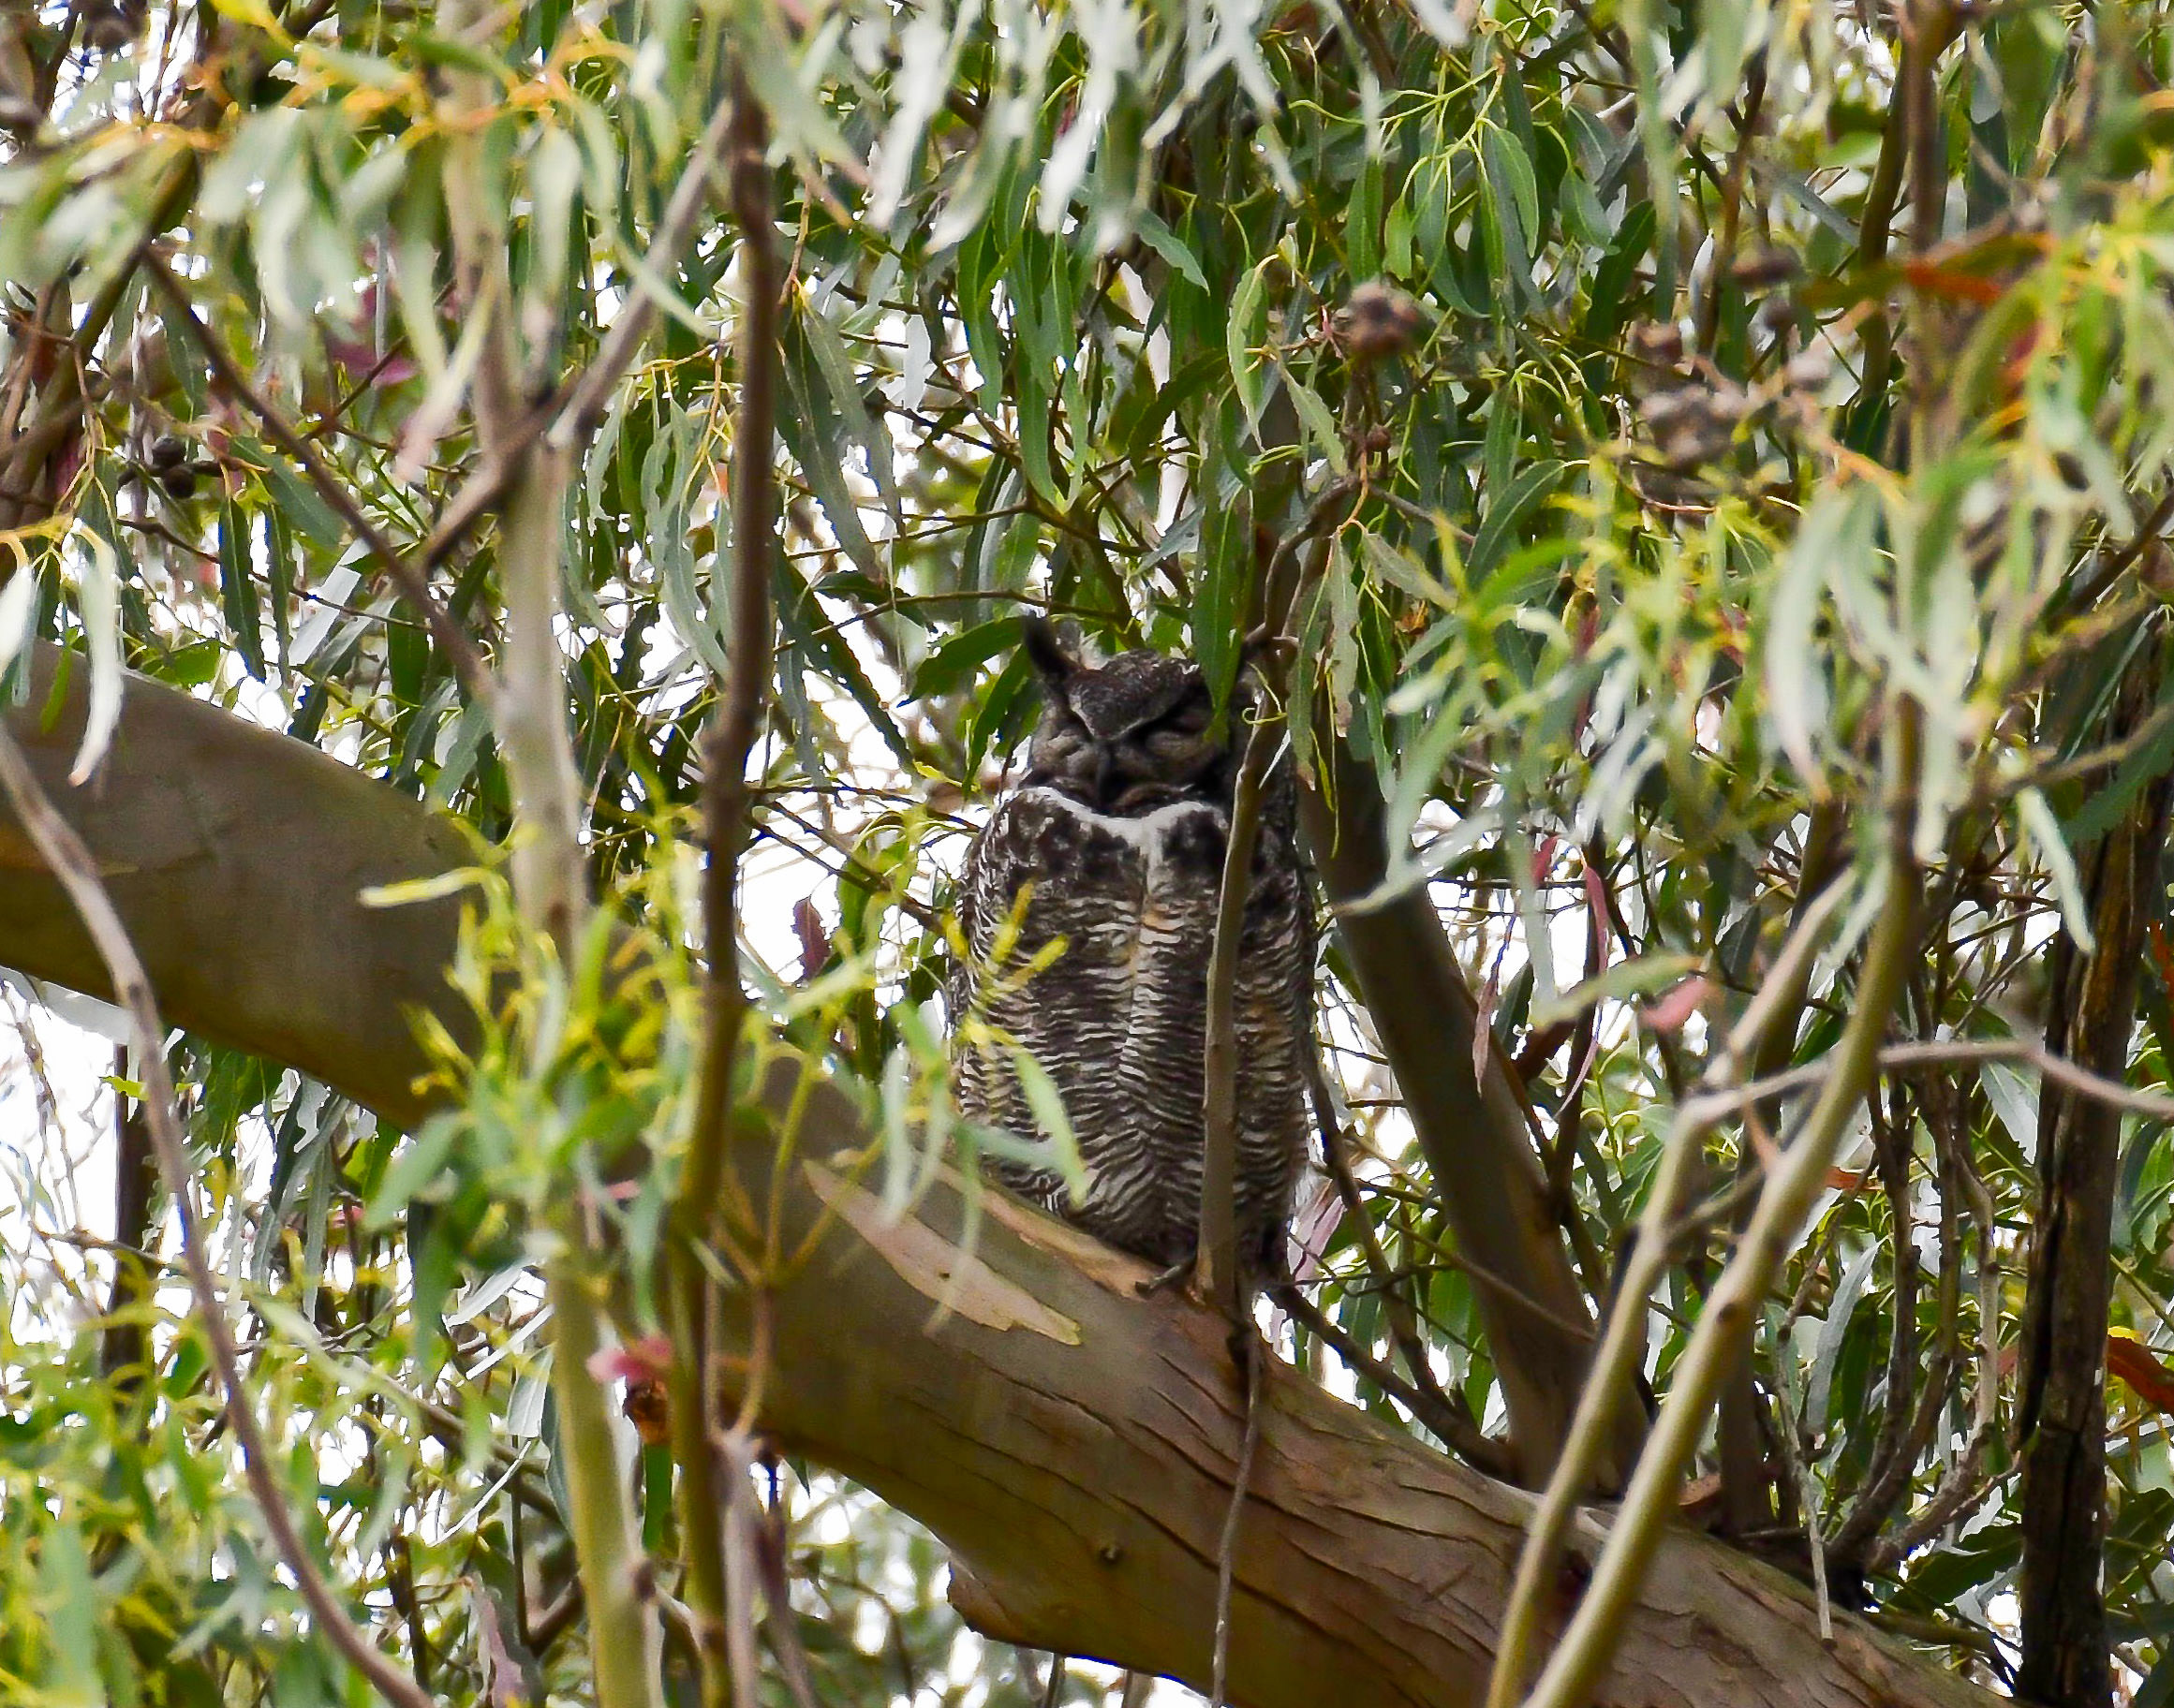 A mother great horned owl guarding her young owls